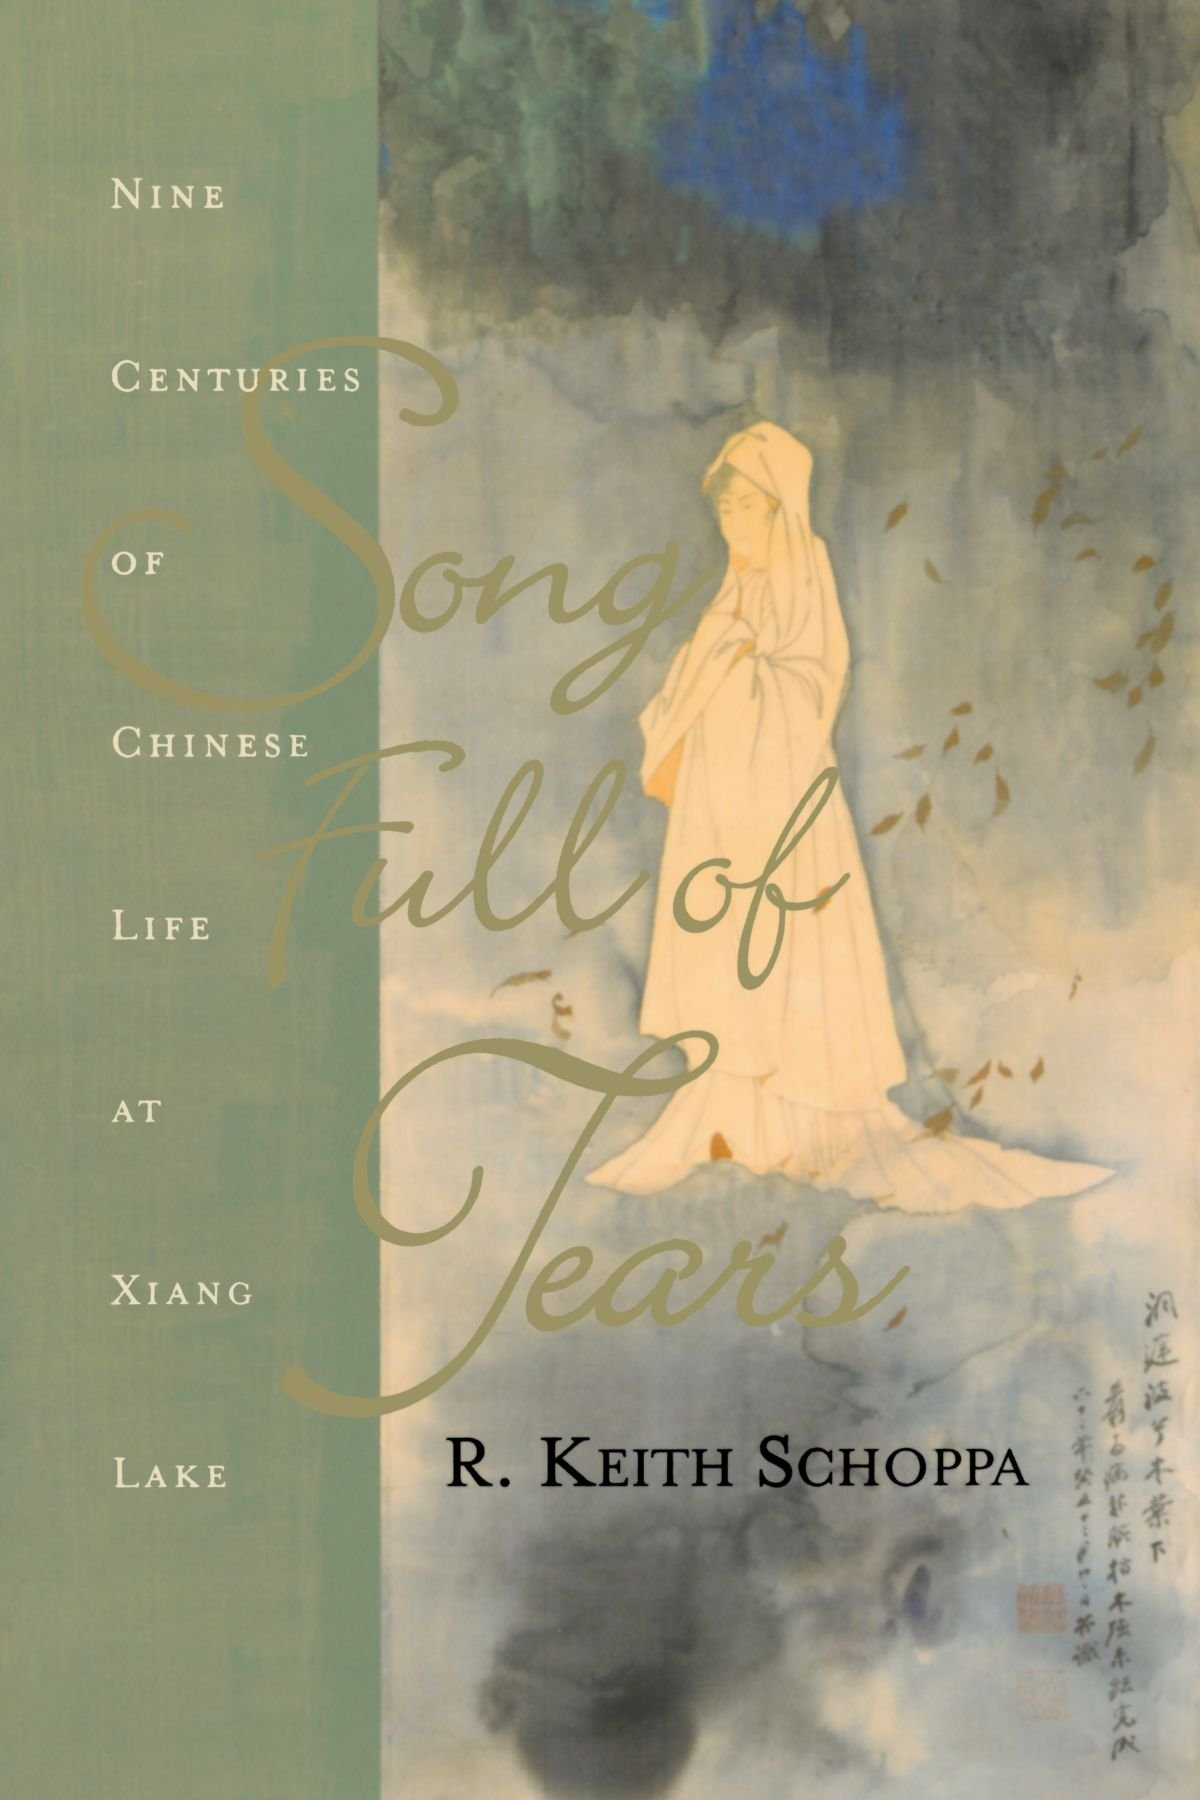 Read Online song Full of Tears: Nine Centuries of Chinese Life Around Xiang Lake ebook